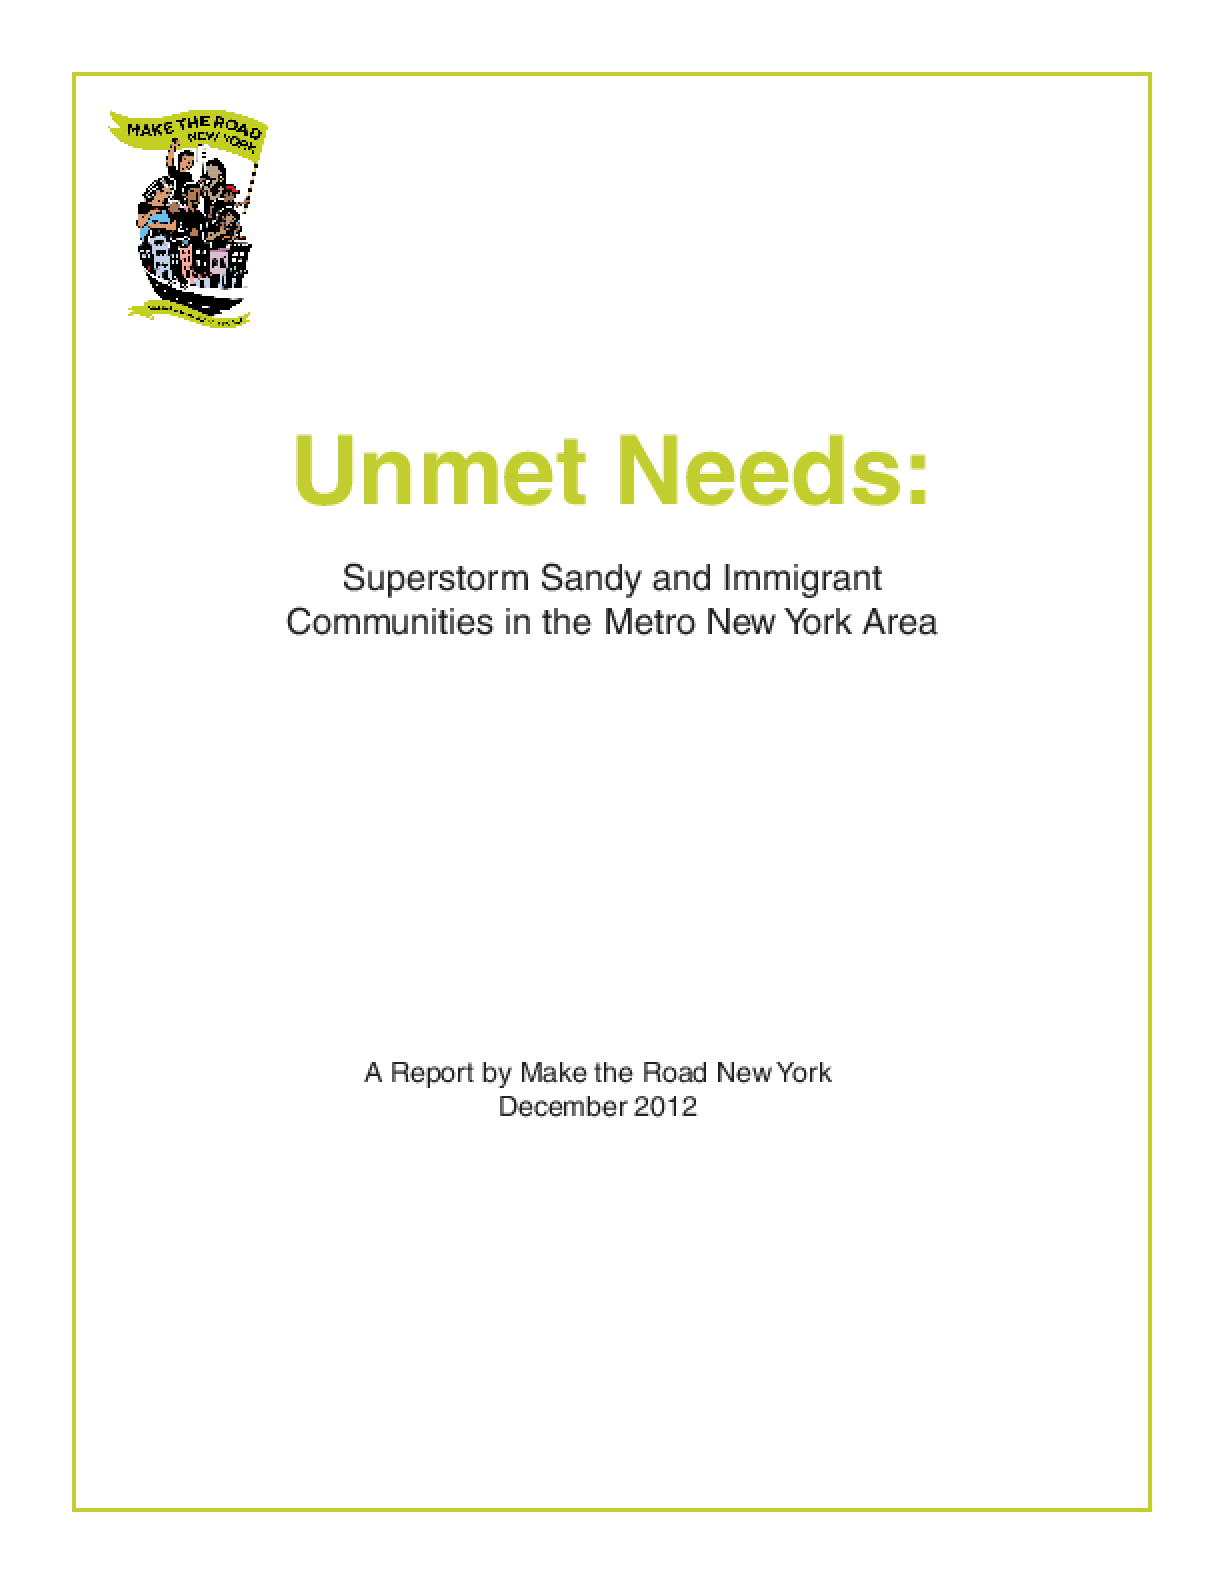 Unmet Needs: Superstorm Sandy and Immigrant Communities in the Metro New York Area